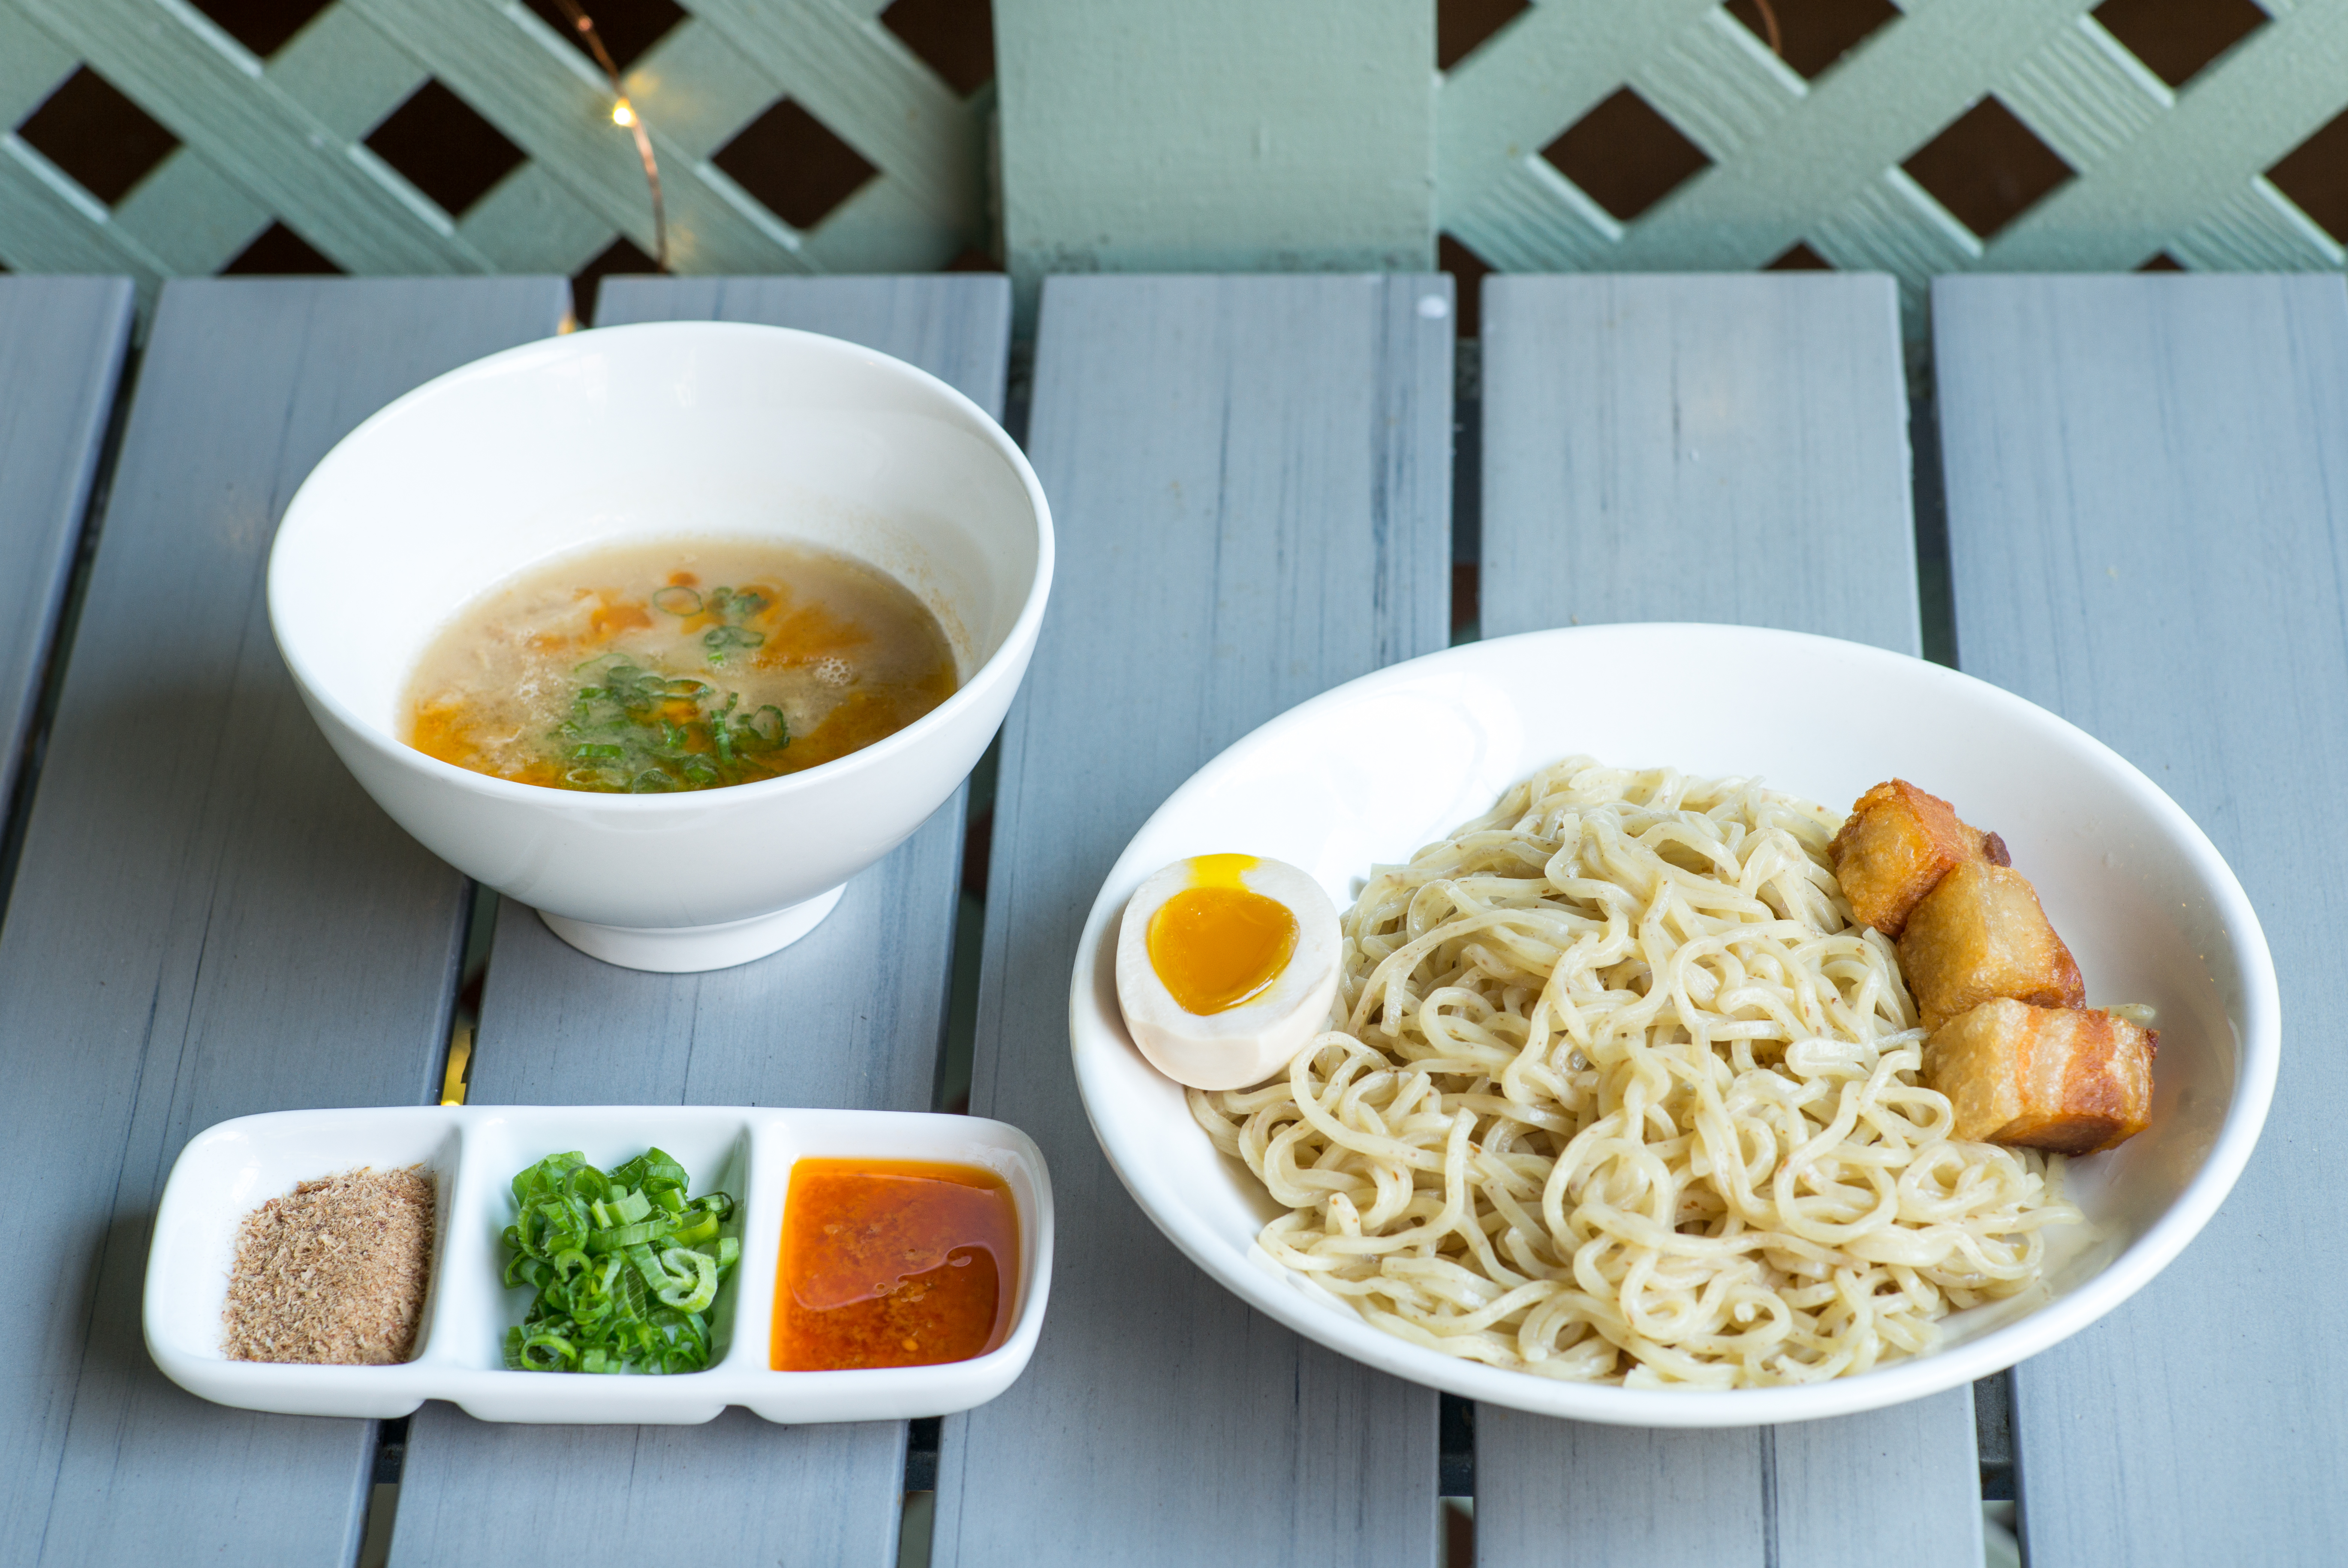 Two bowls, one of tonkotsu broth and another of noodles, sit on an slatted outdoor picnic table. Beside them, a tray of garnishes and colorful sauces.